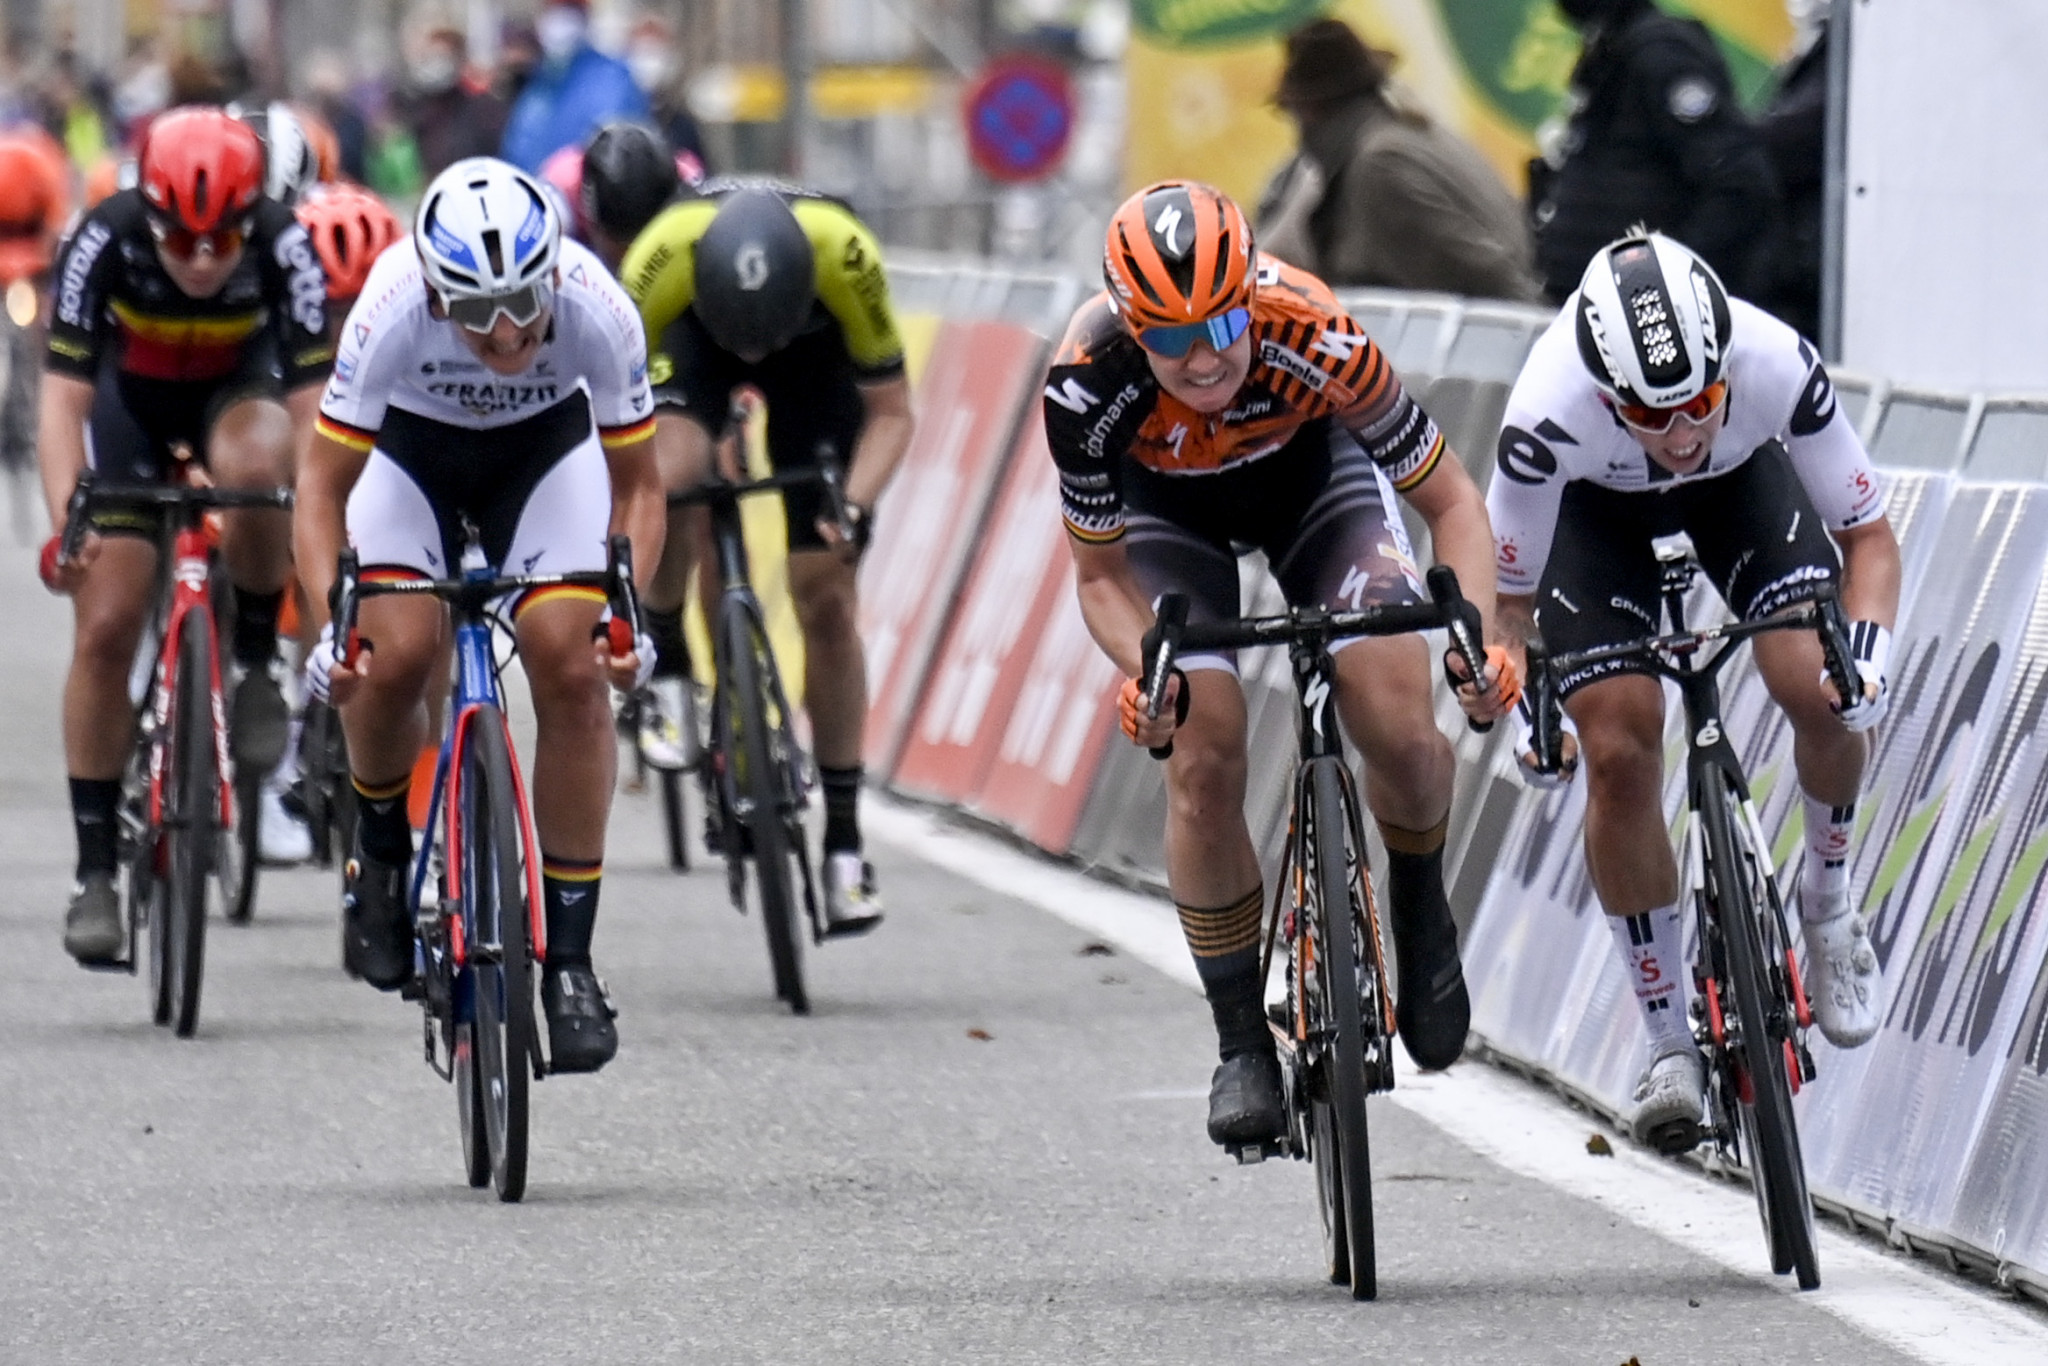 Wiebes backs up Bruges-De Panne triumph with Madrid Challenge stage win